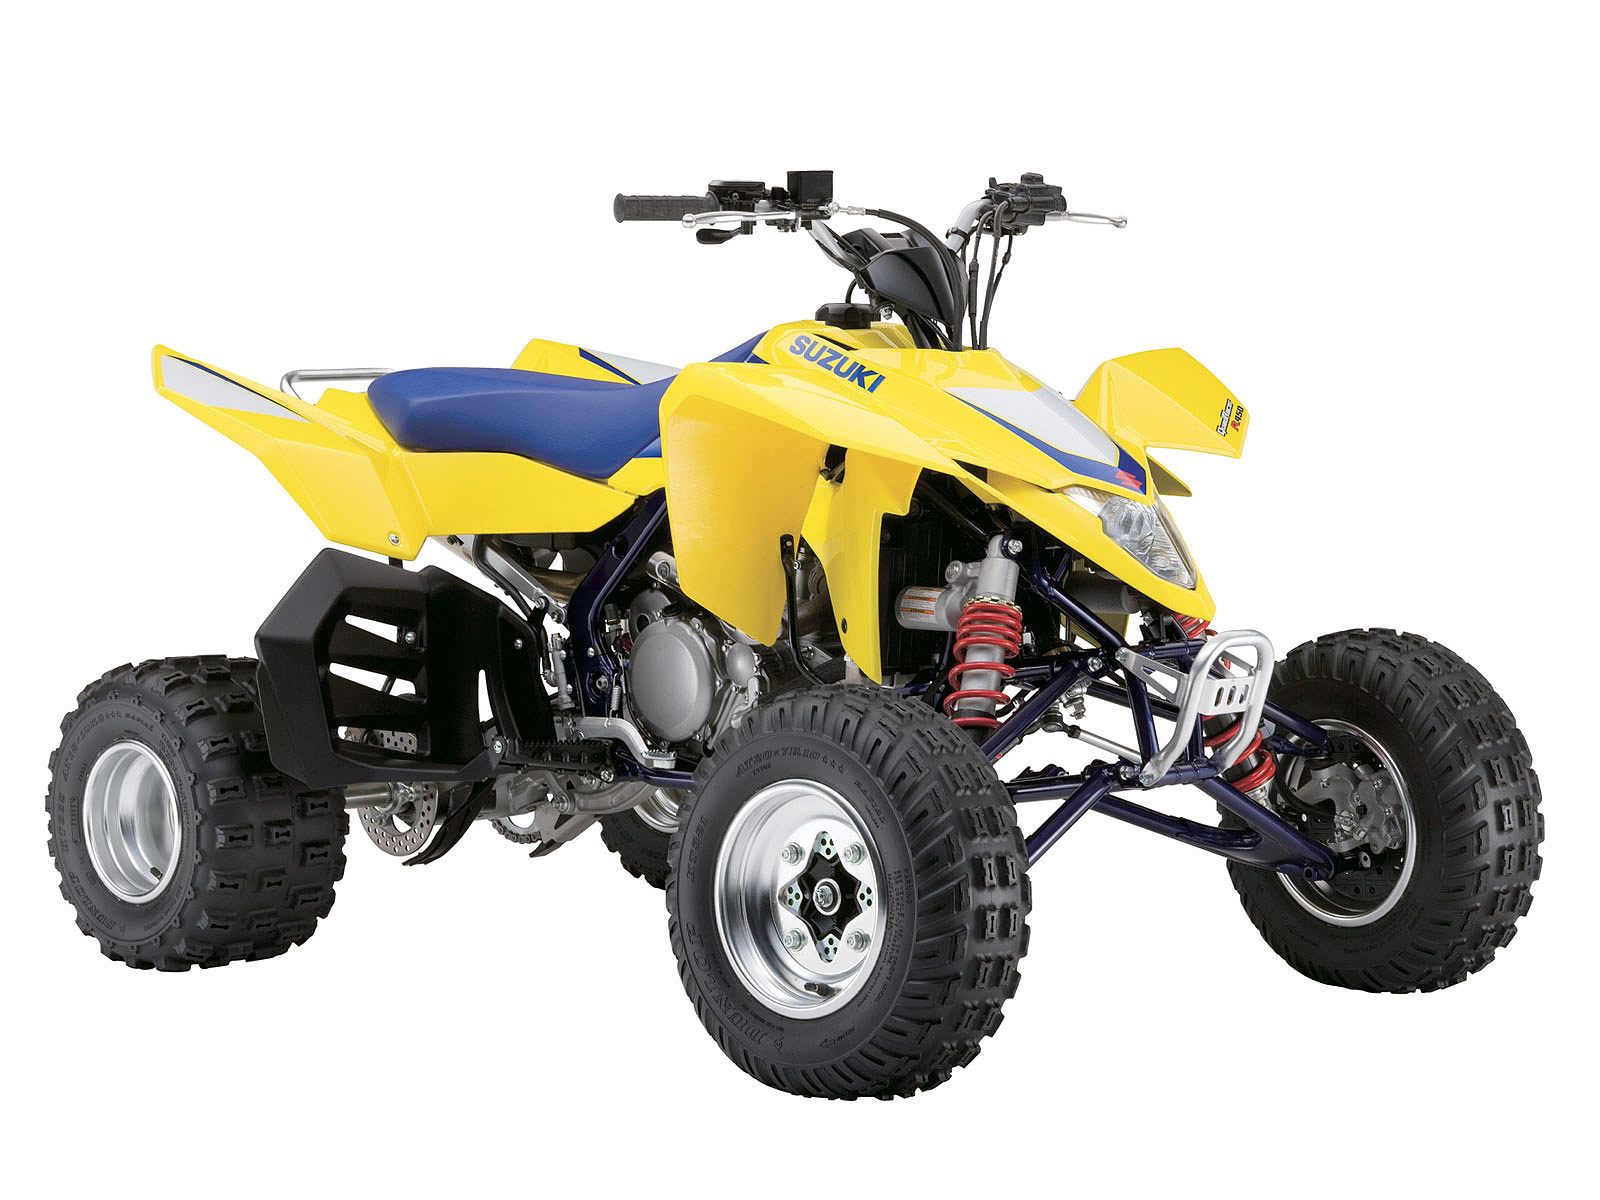 2006 suzuki atv ltr 450 pictures specs accident lawyers. Black Bedroom Furniture Sets. Home Design Ideas